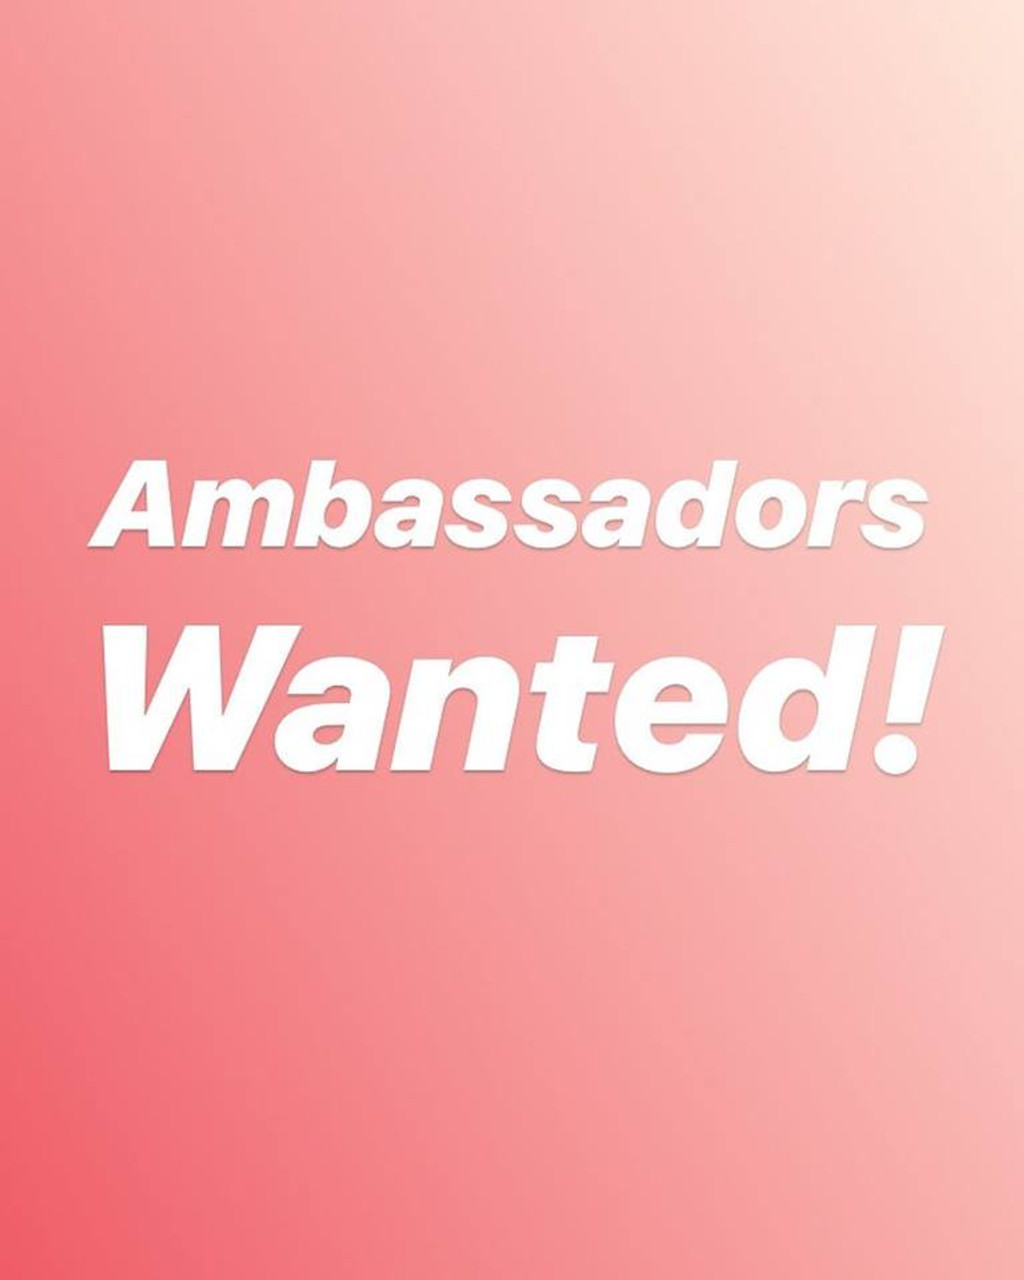 NOW LOOKING FOR BRAND AMBASSADORS